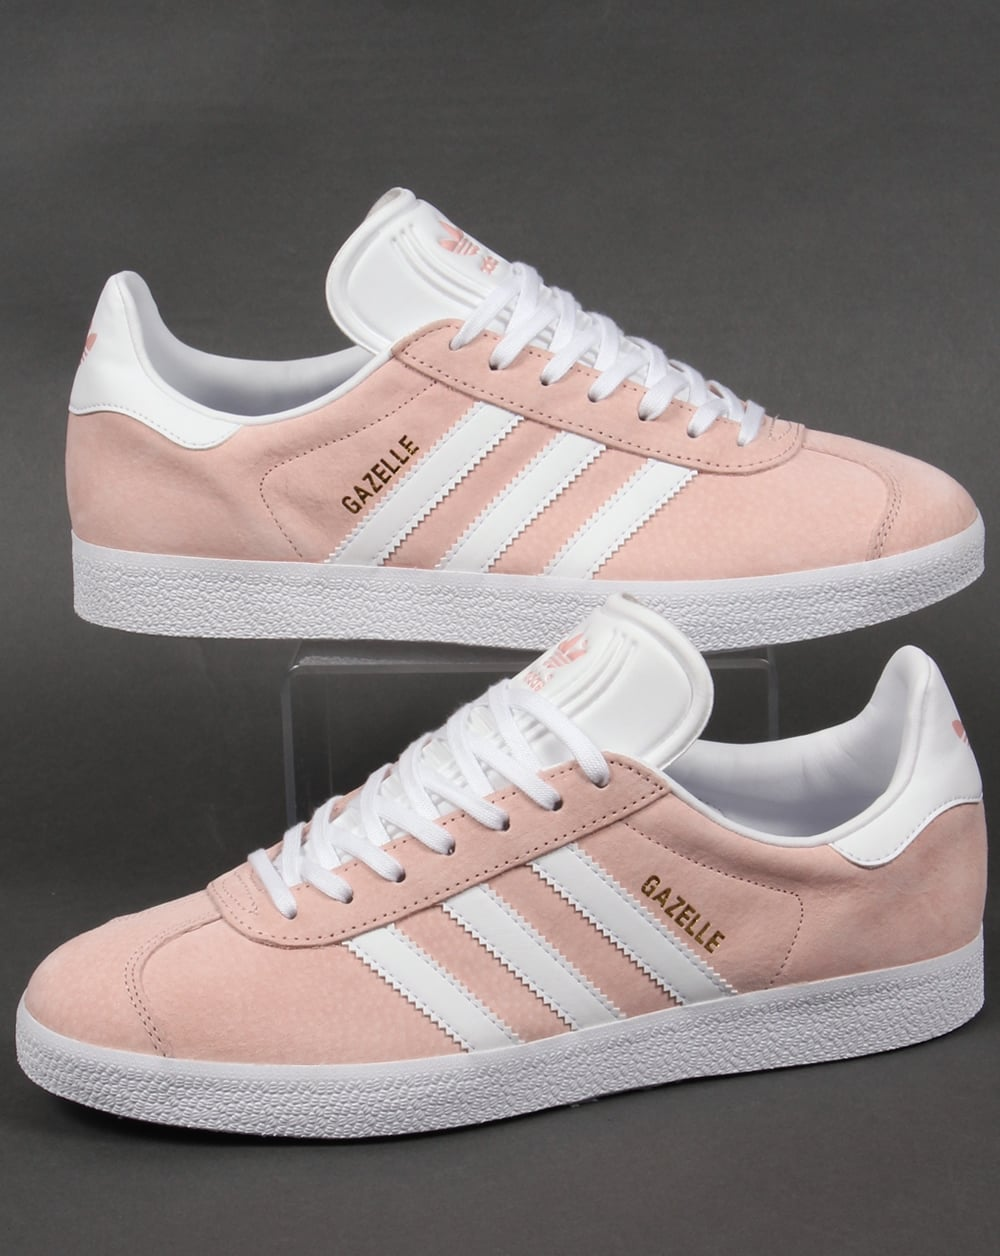 1d37e255ea10 adidas Trainers Adidas Gazelle Trainers Light Pink White